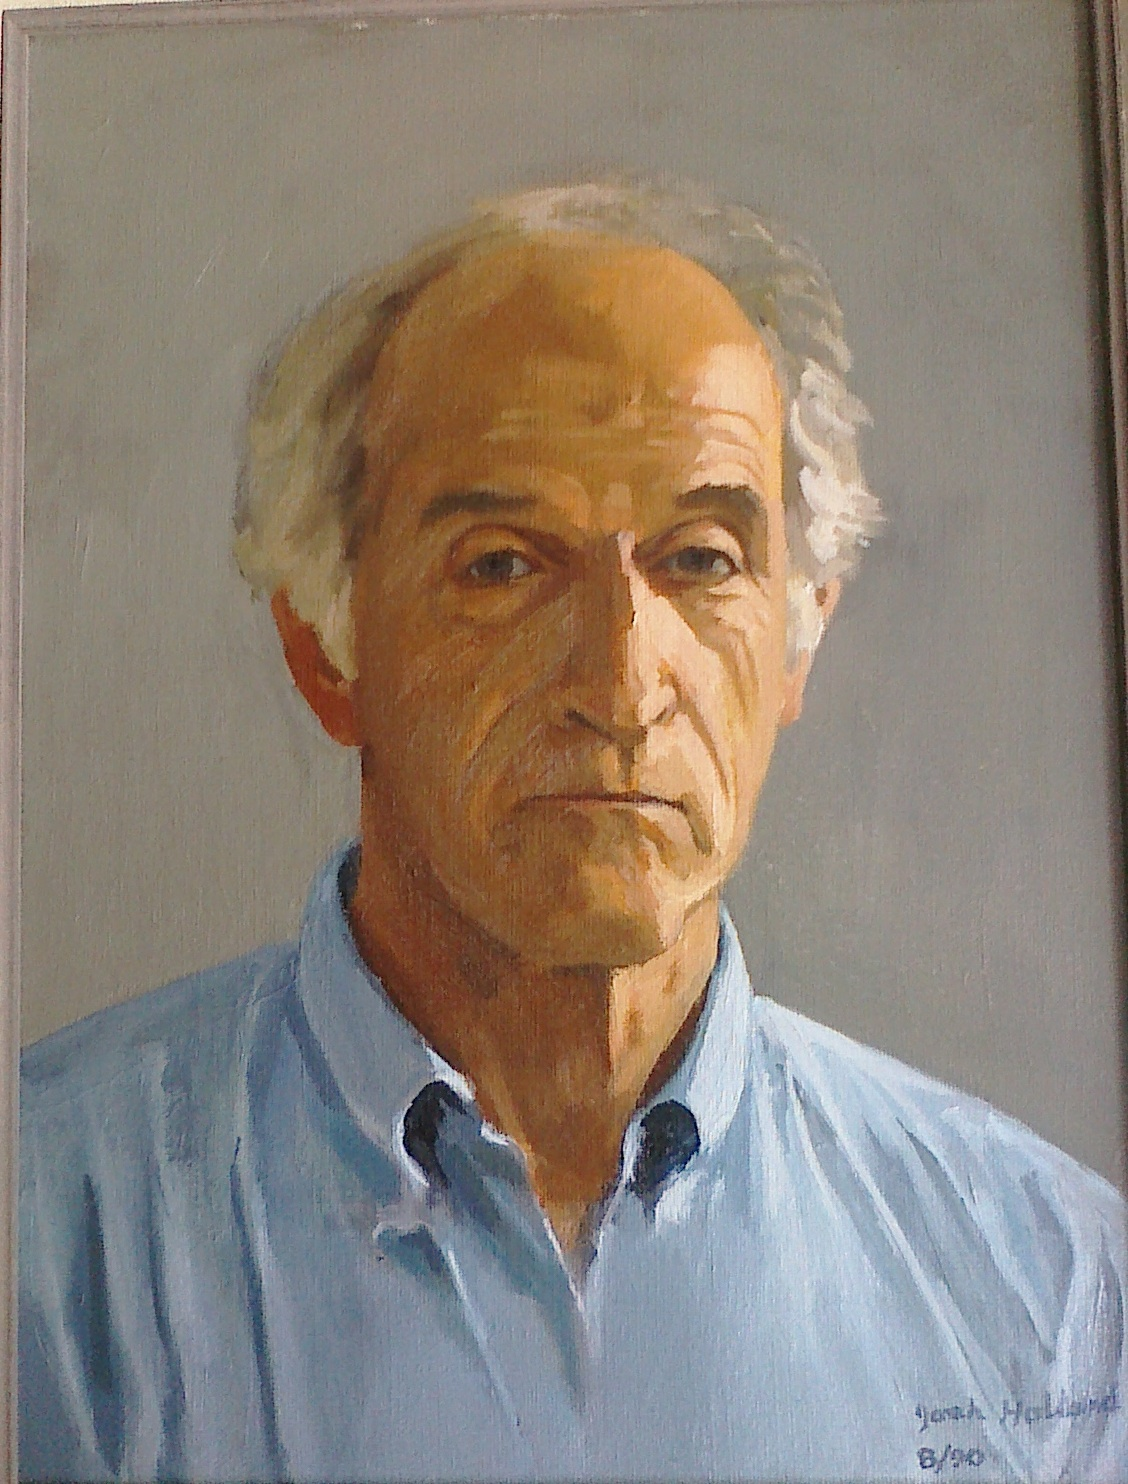 JZH 1990 Self Portrait, Oil;Josh Holland